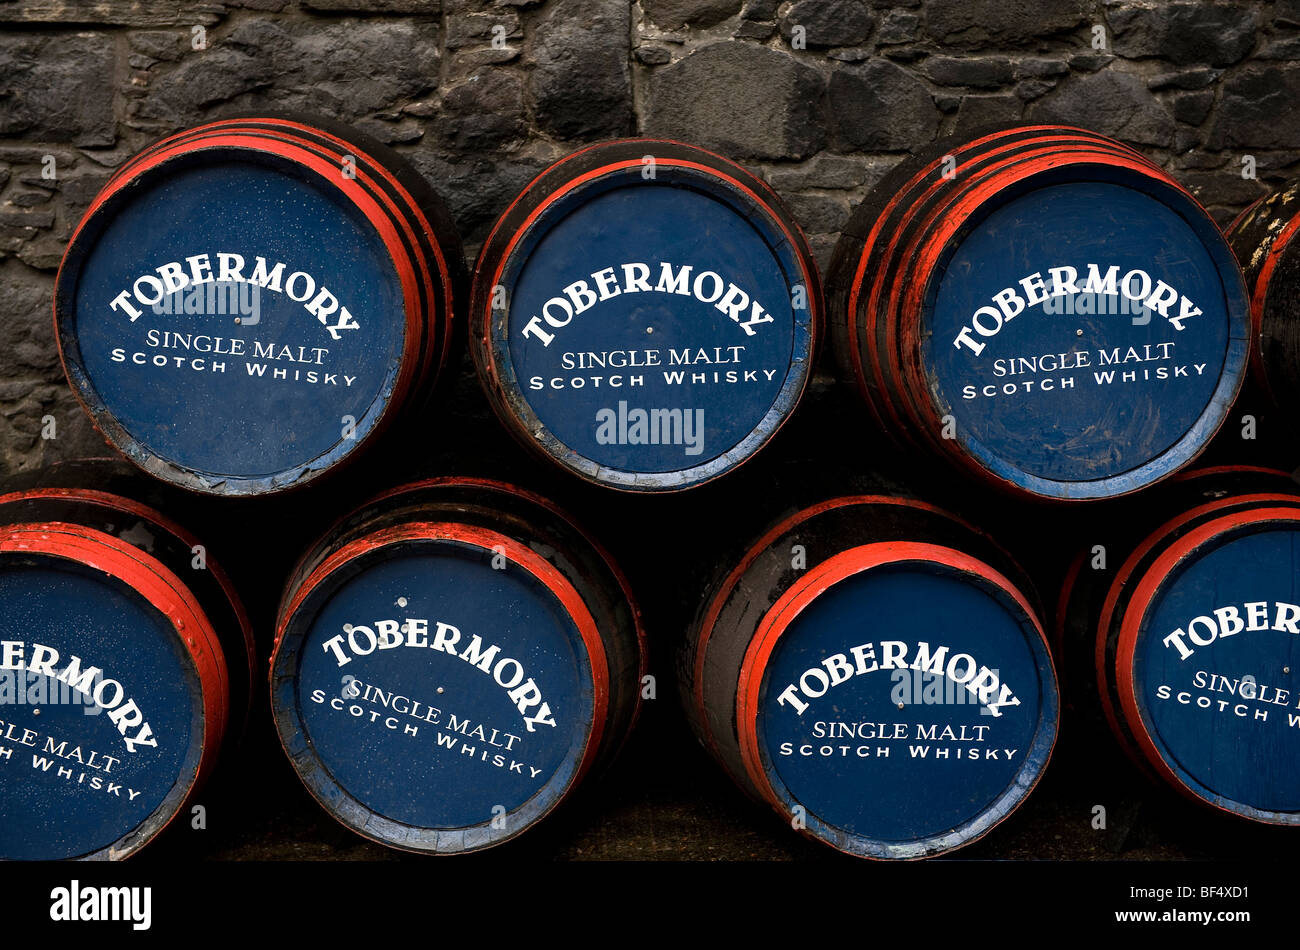 tobermory whisky distillery, isle of mull, scotland - Stock Image